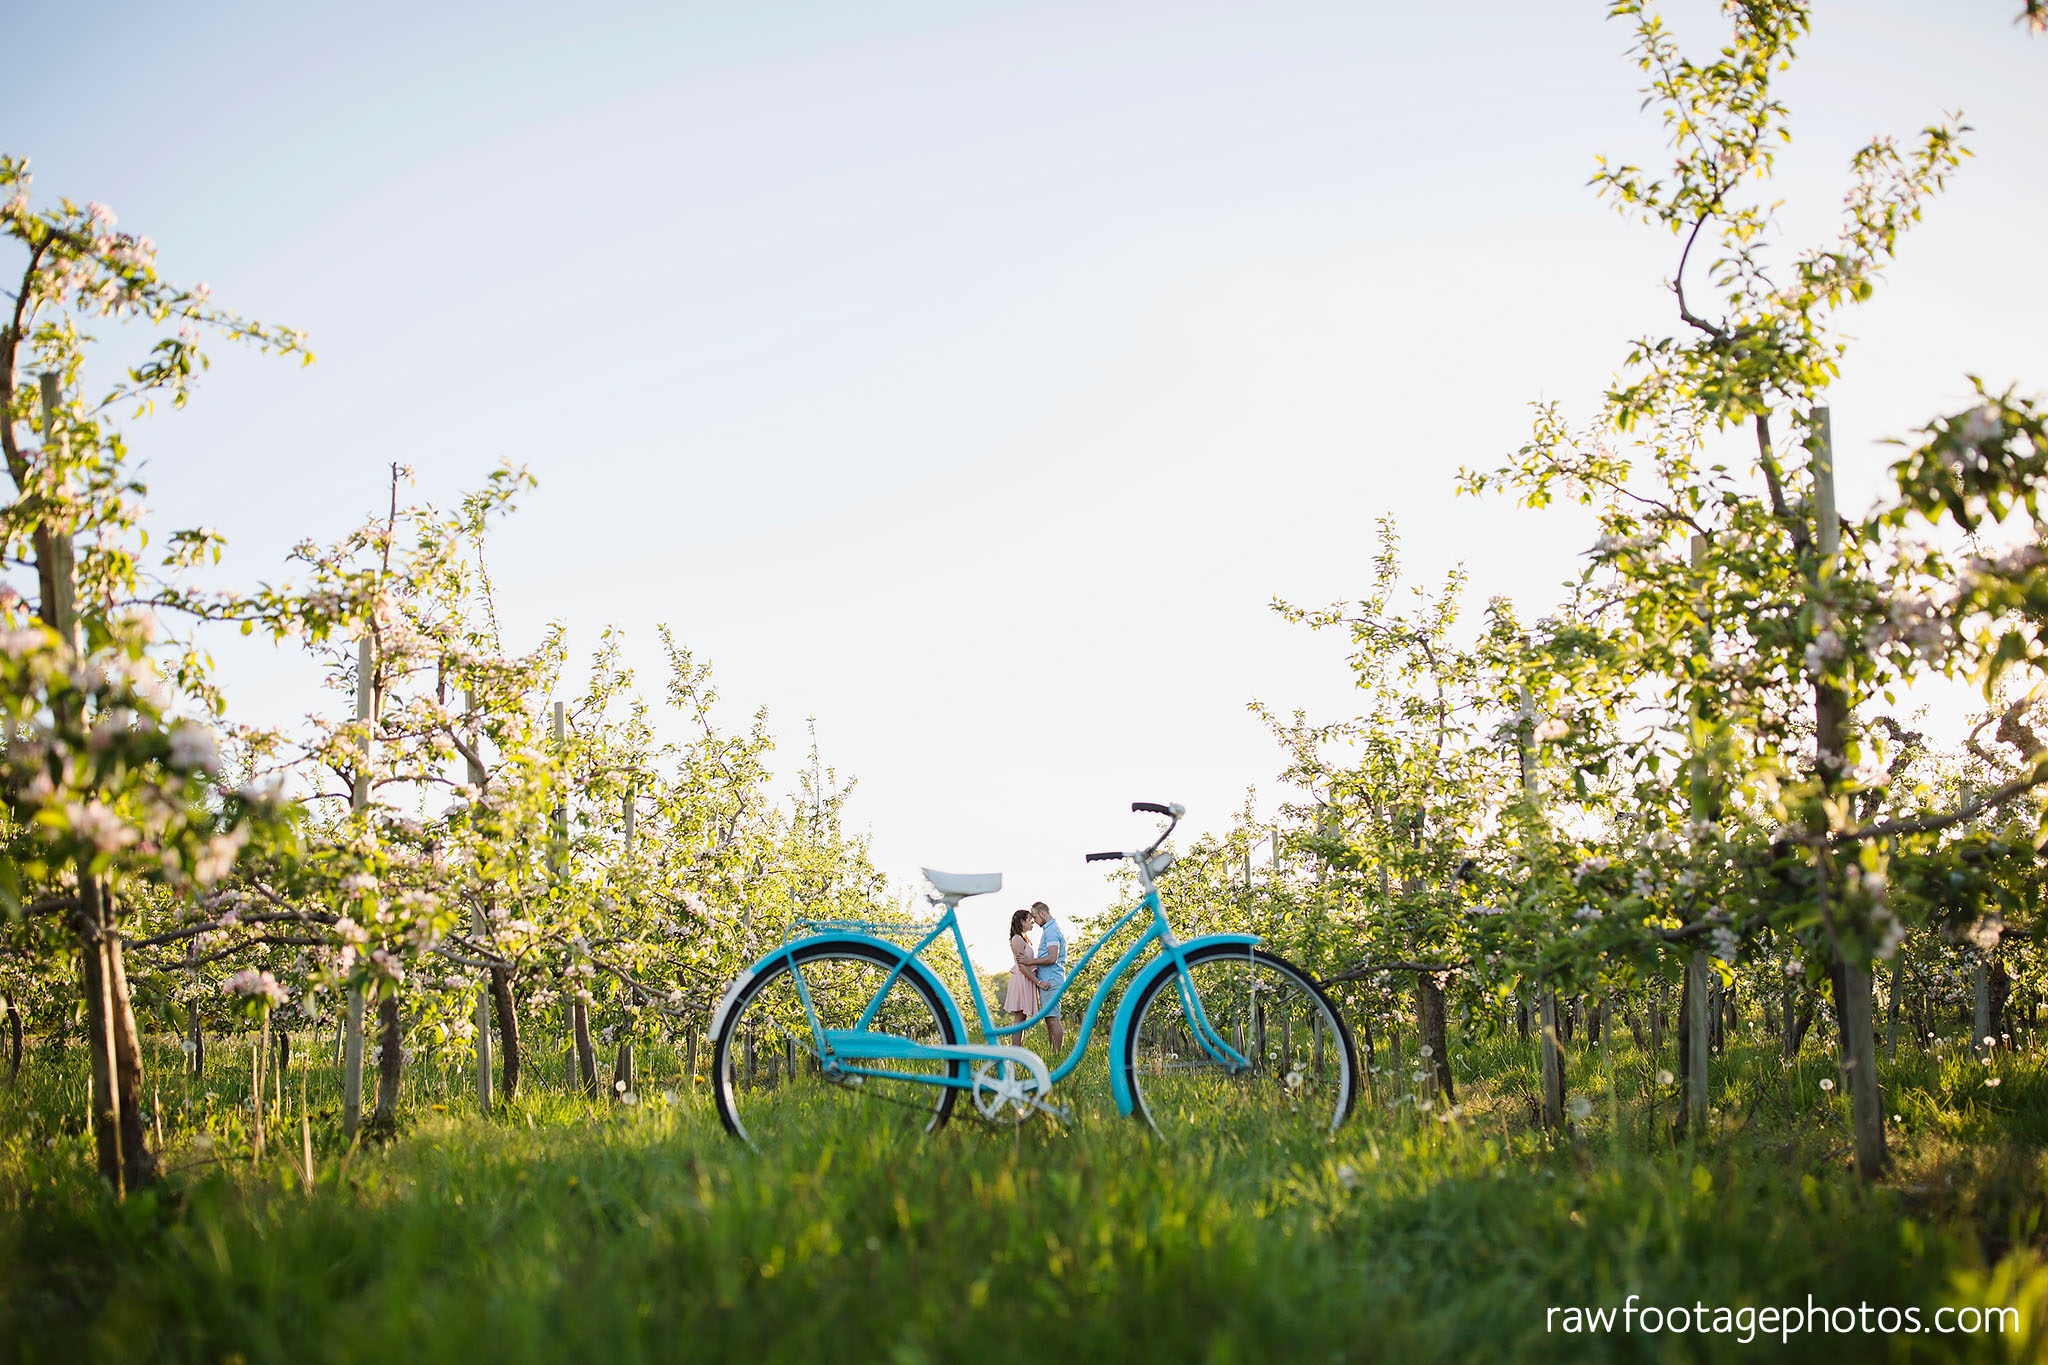 london_ontario_wedding_photographer-raw_footage_photography-engagement_session-airport_session-airplane-balloons-apple_orchard-spring_blooms-apple_blossoms023.jpg